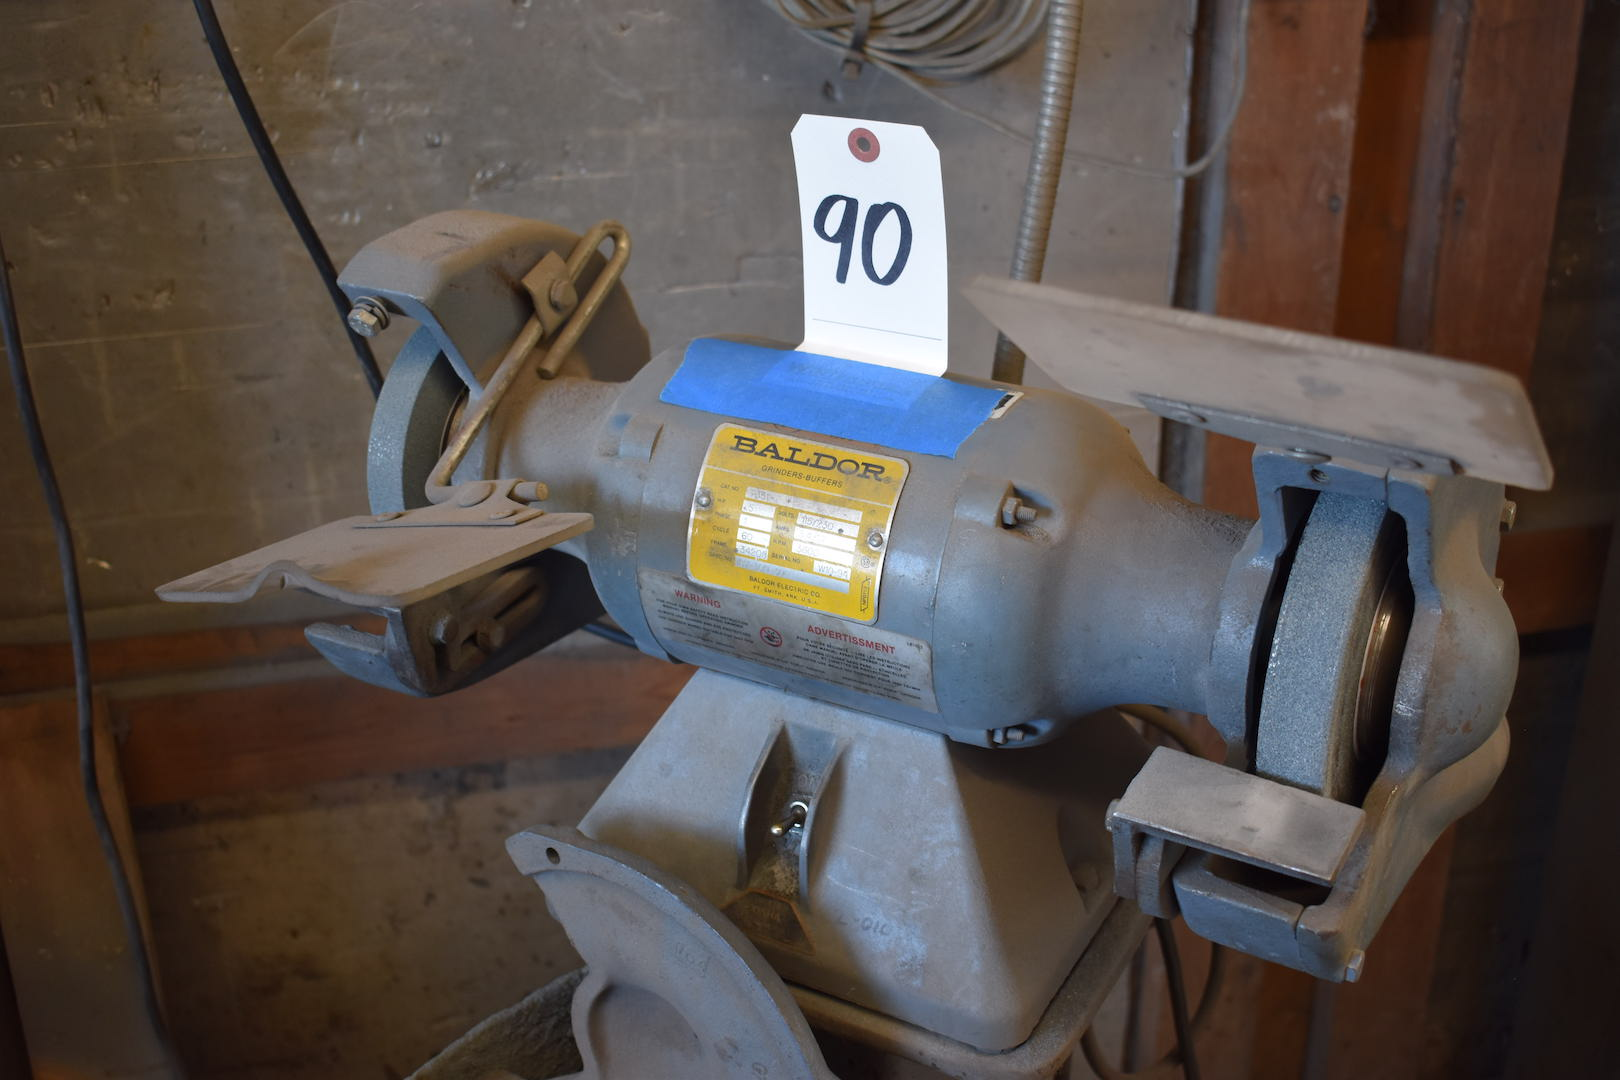 Lot 90 - Baldor 6 in. Double End Grinder, 1/2 HP, 115/230 Volts, 3600 RPM